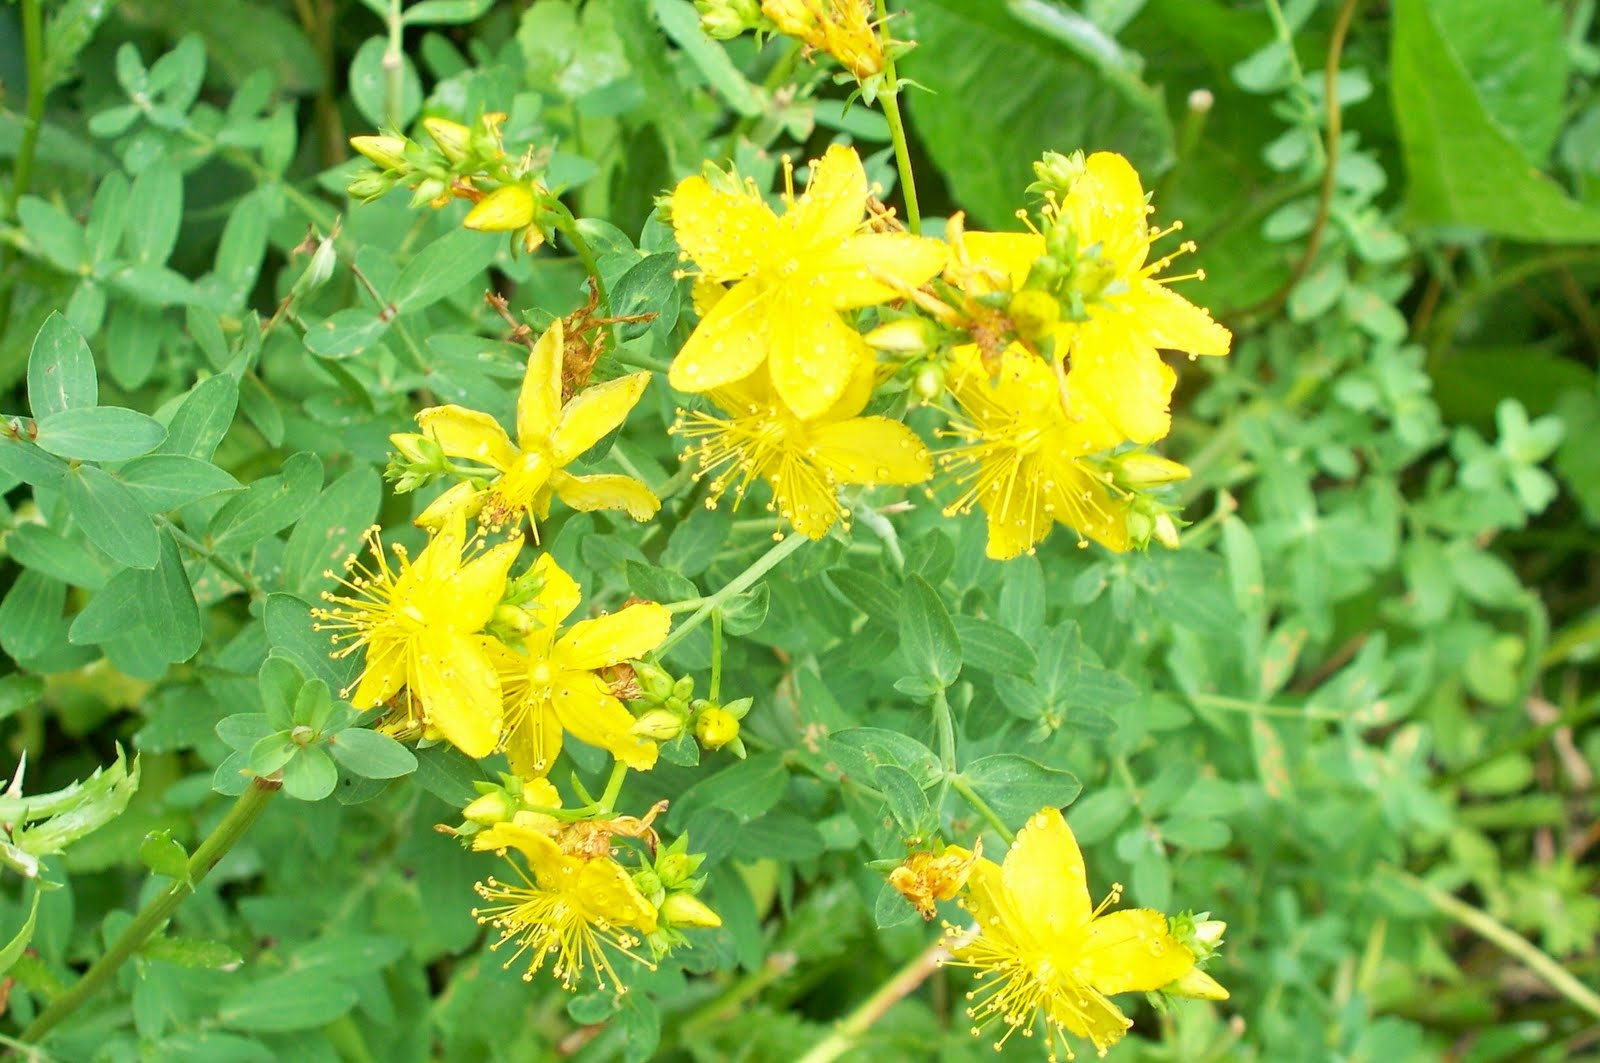 Yellow flower herb choice image flower decoration ideas yellow flower herb image collections flower decoration ideas yellow flower herb choice image flower decoration ideas mightylinksfo